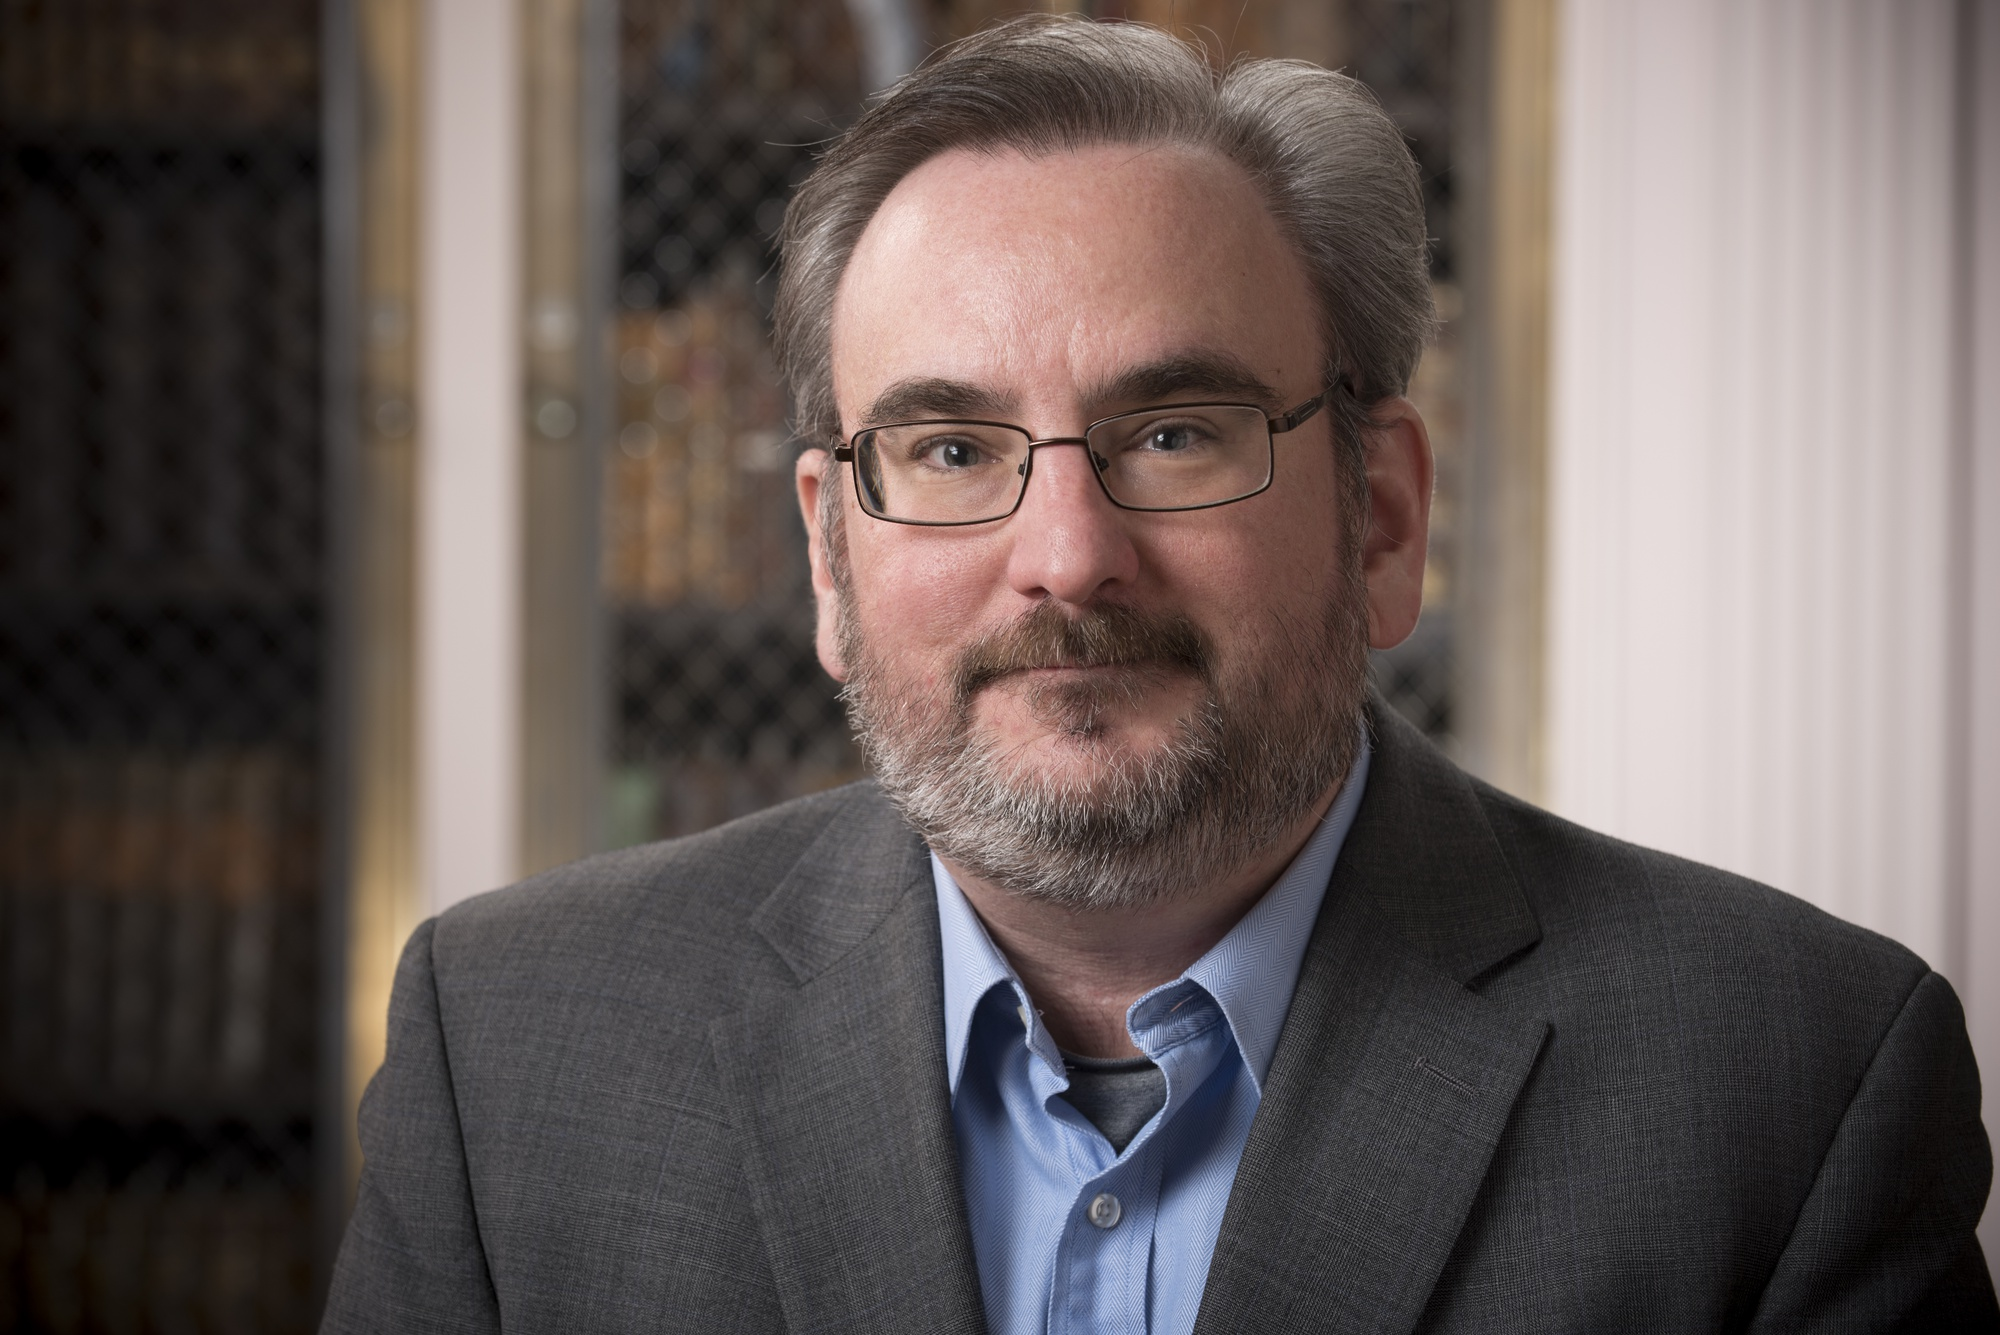 John H. Overholt, a curator at Houghton Library and avid tweeter @john_overholt, hopes to display diverse collection of books and build a welcoming atmosphere.